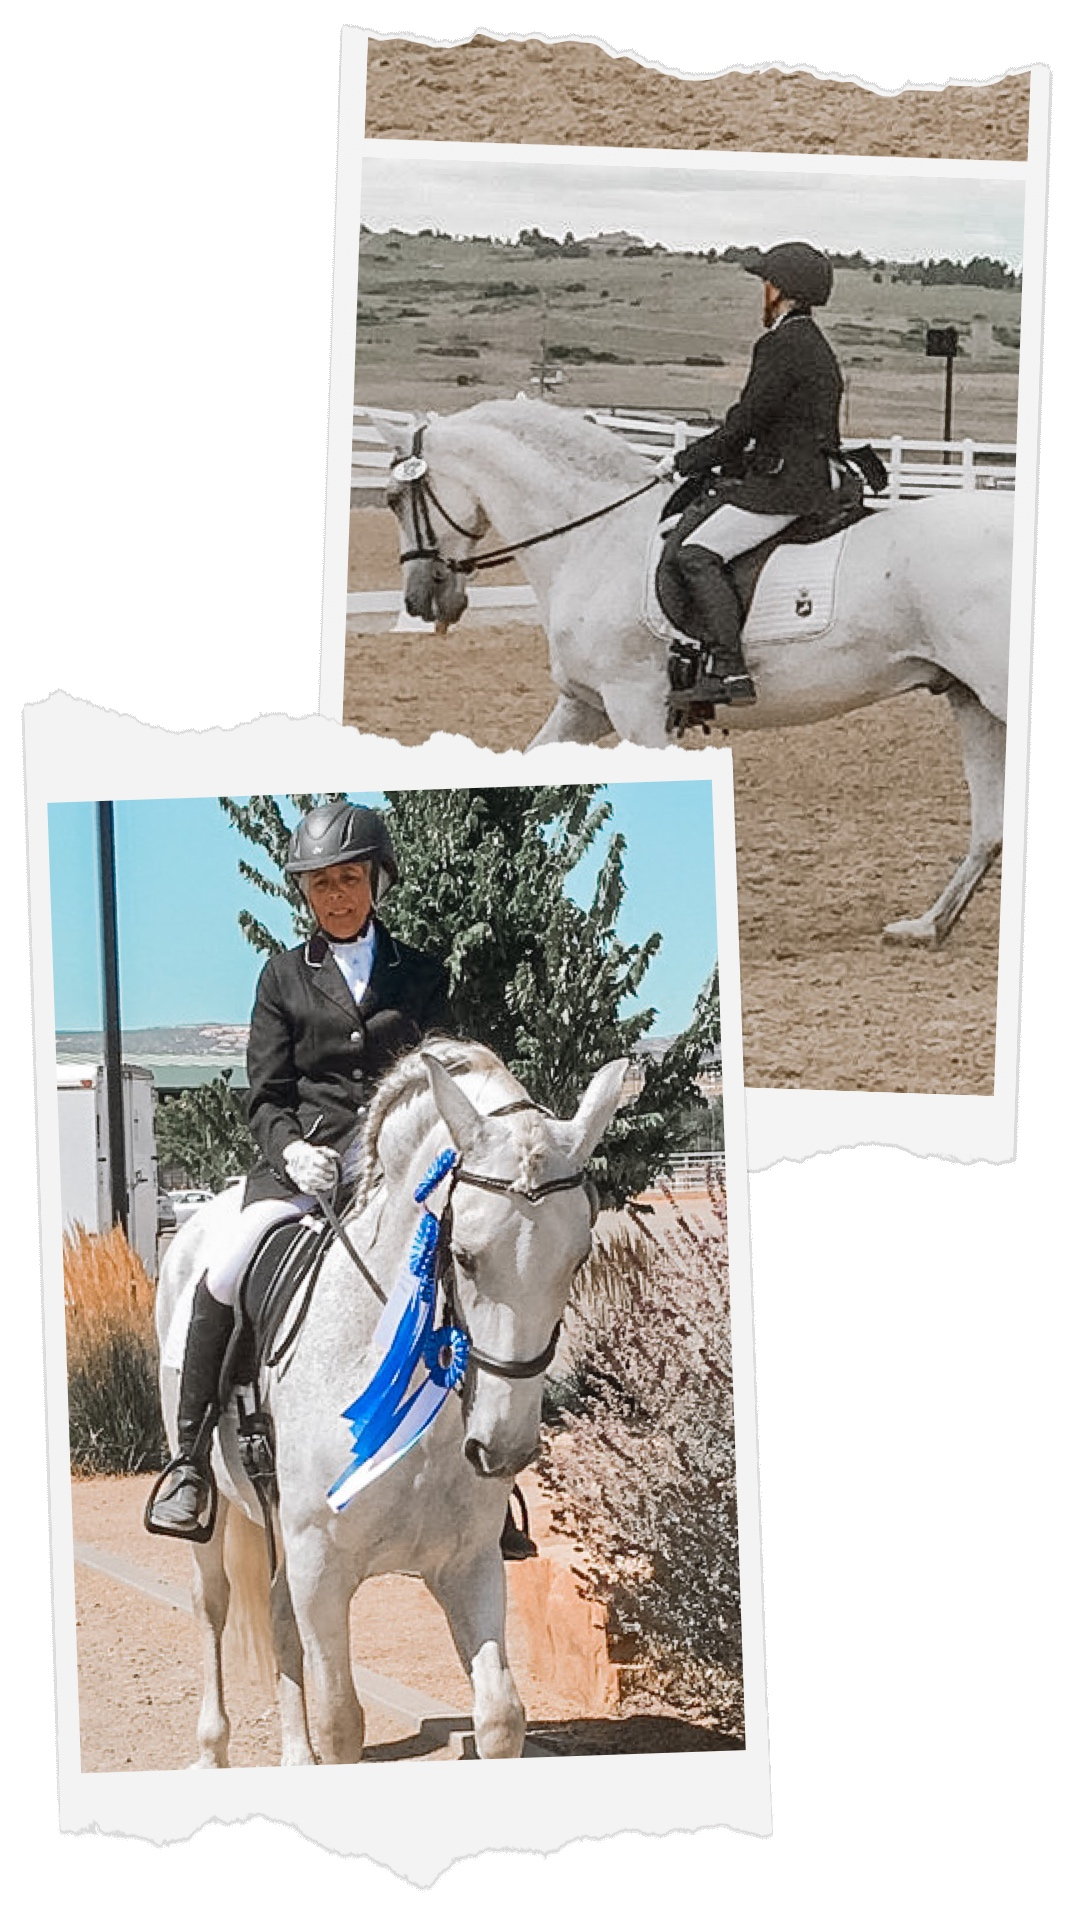 Cheri Isgreen competing with her horse, Monarch.